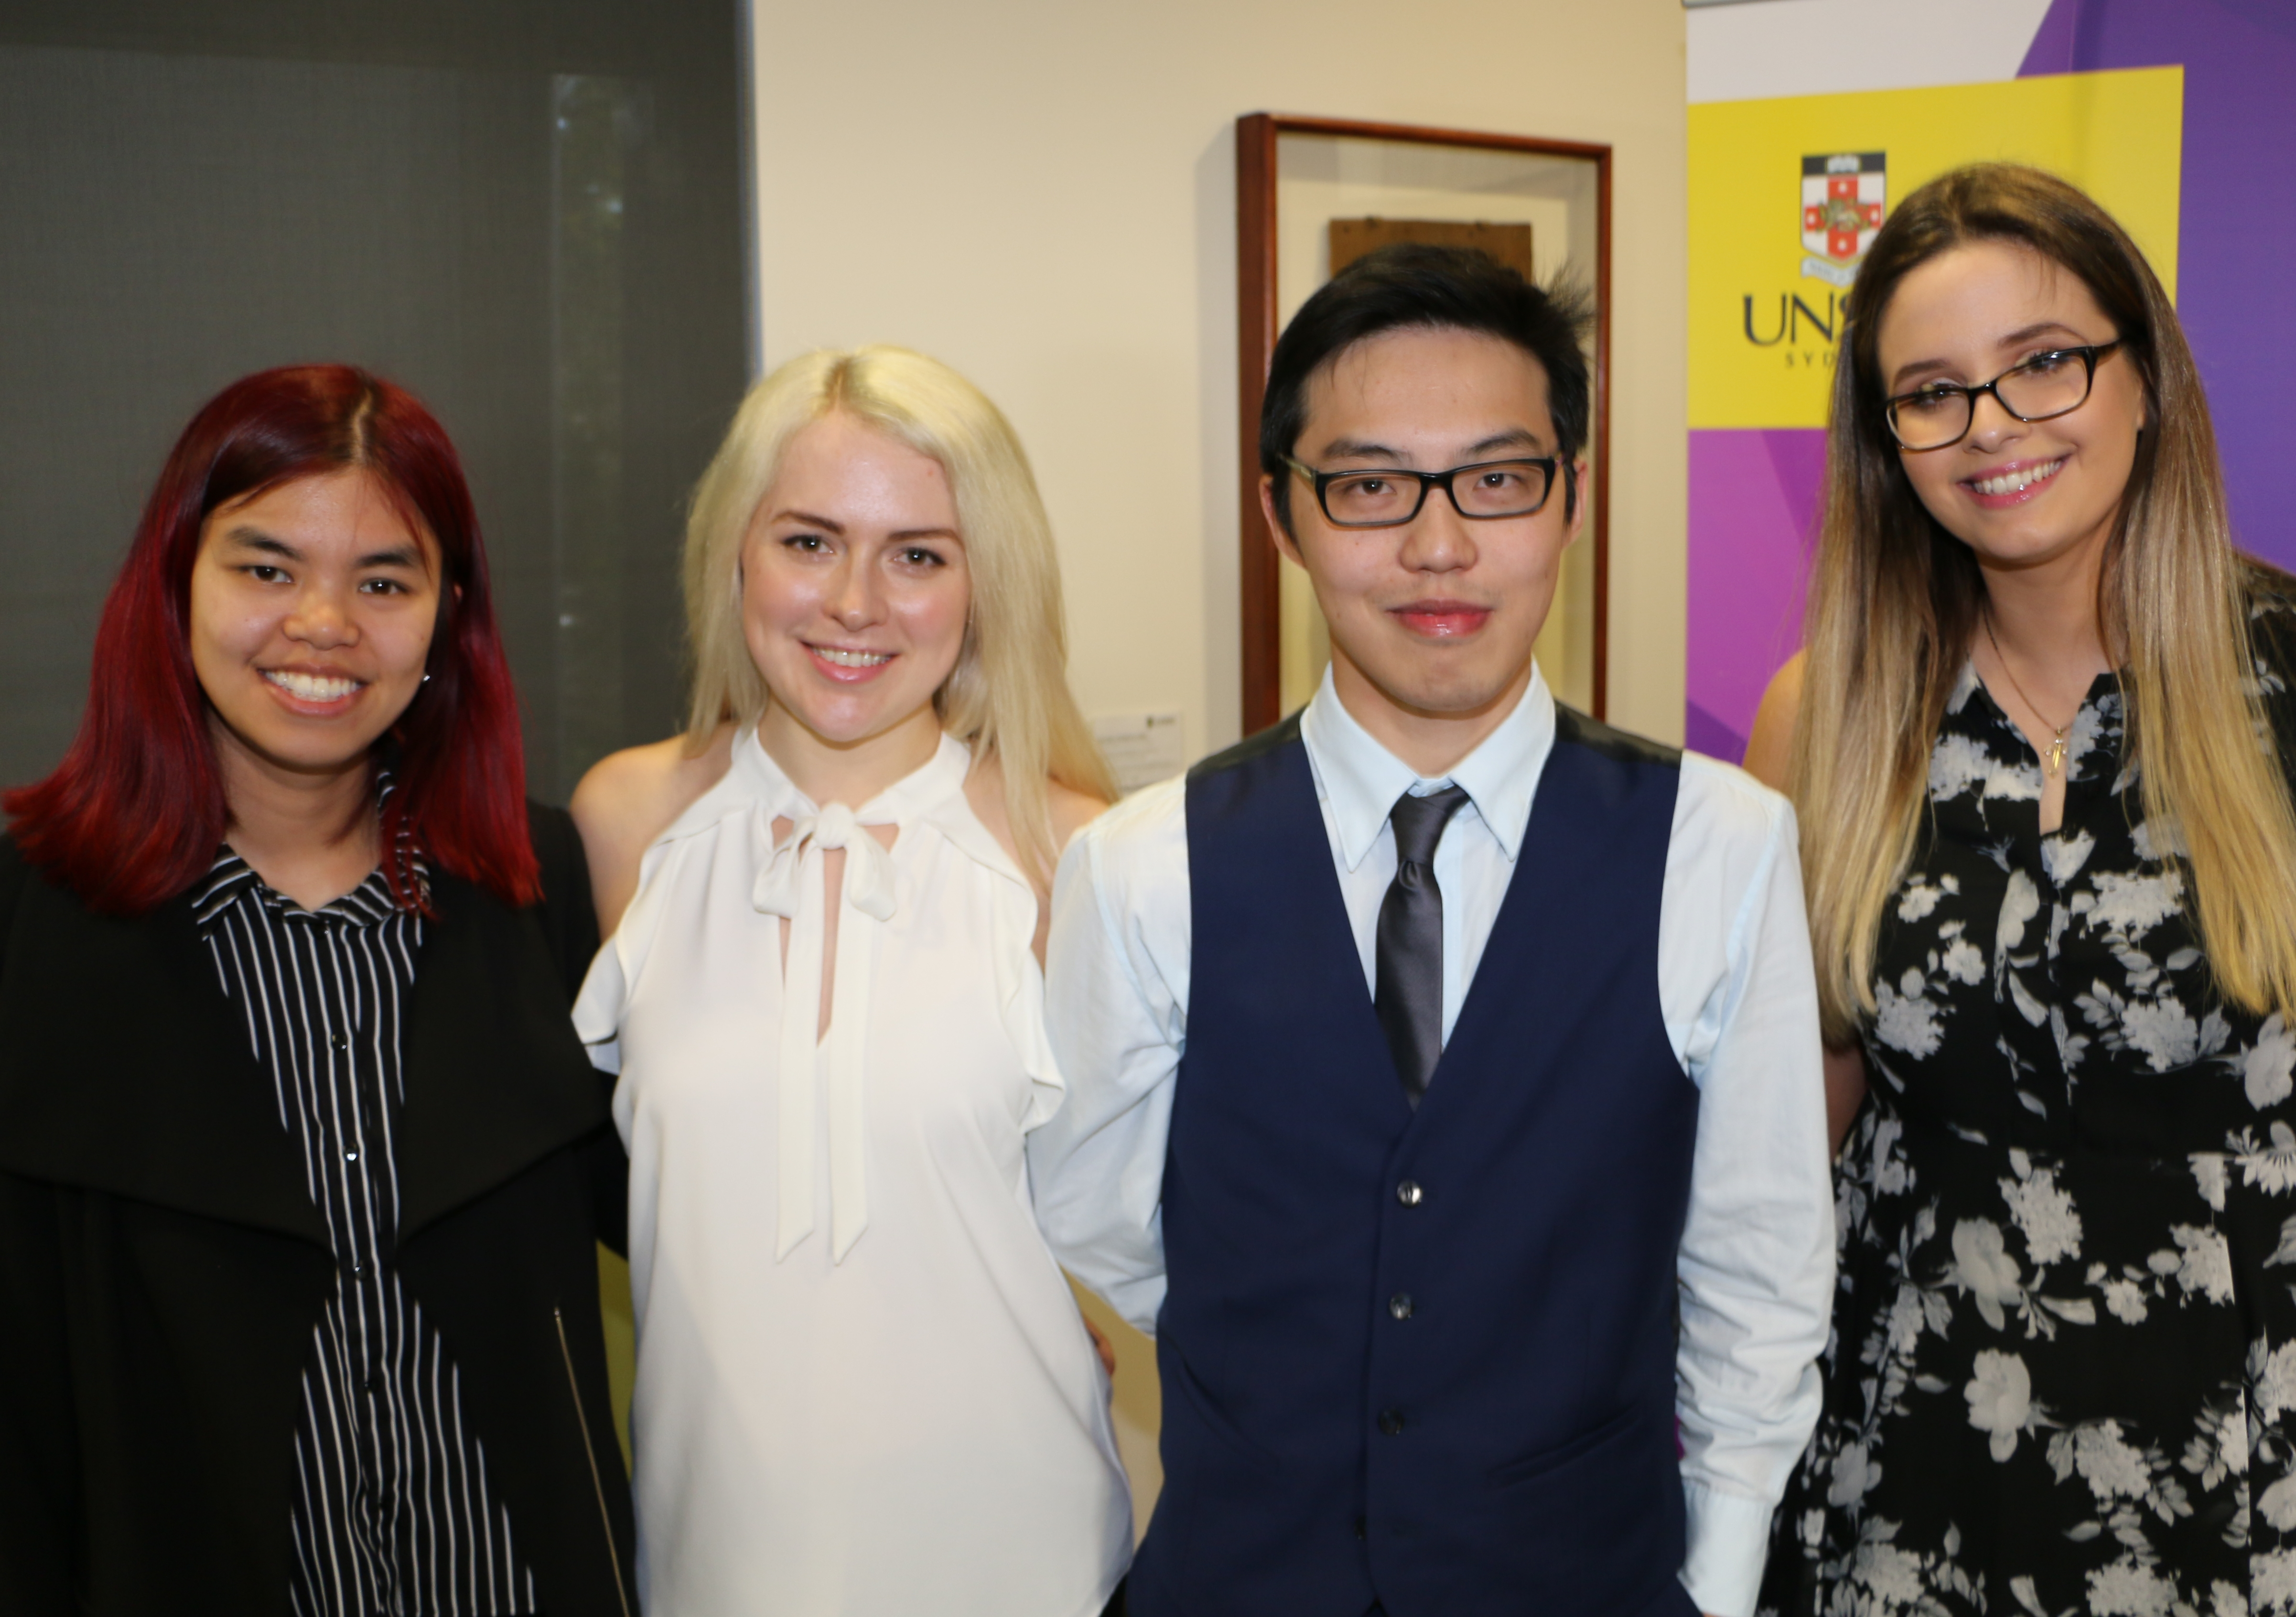 Students Jessica Liang, Clare Cullen, Leon Louie and Jelena Ardalic built a clever app to help clients deal with fines.